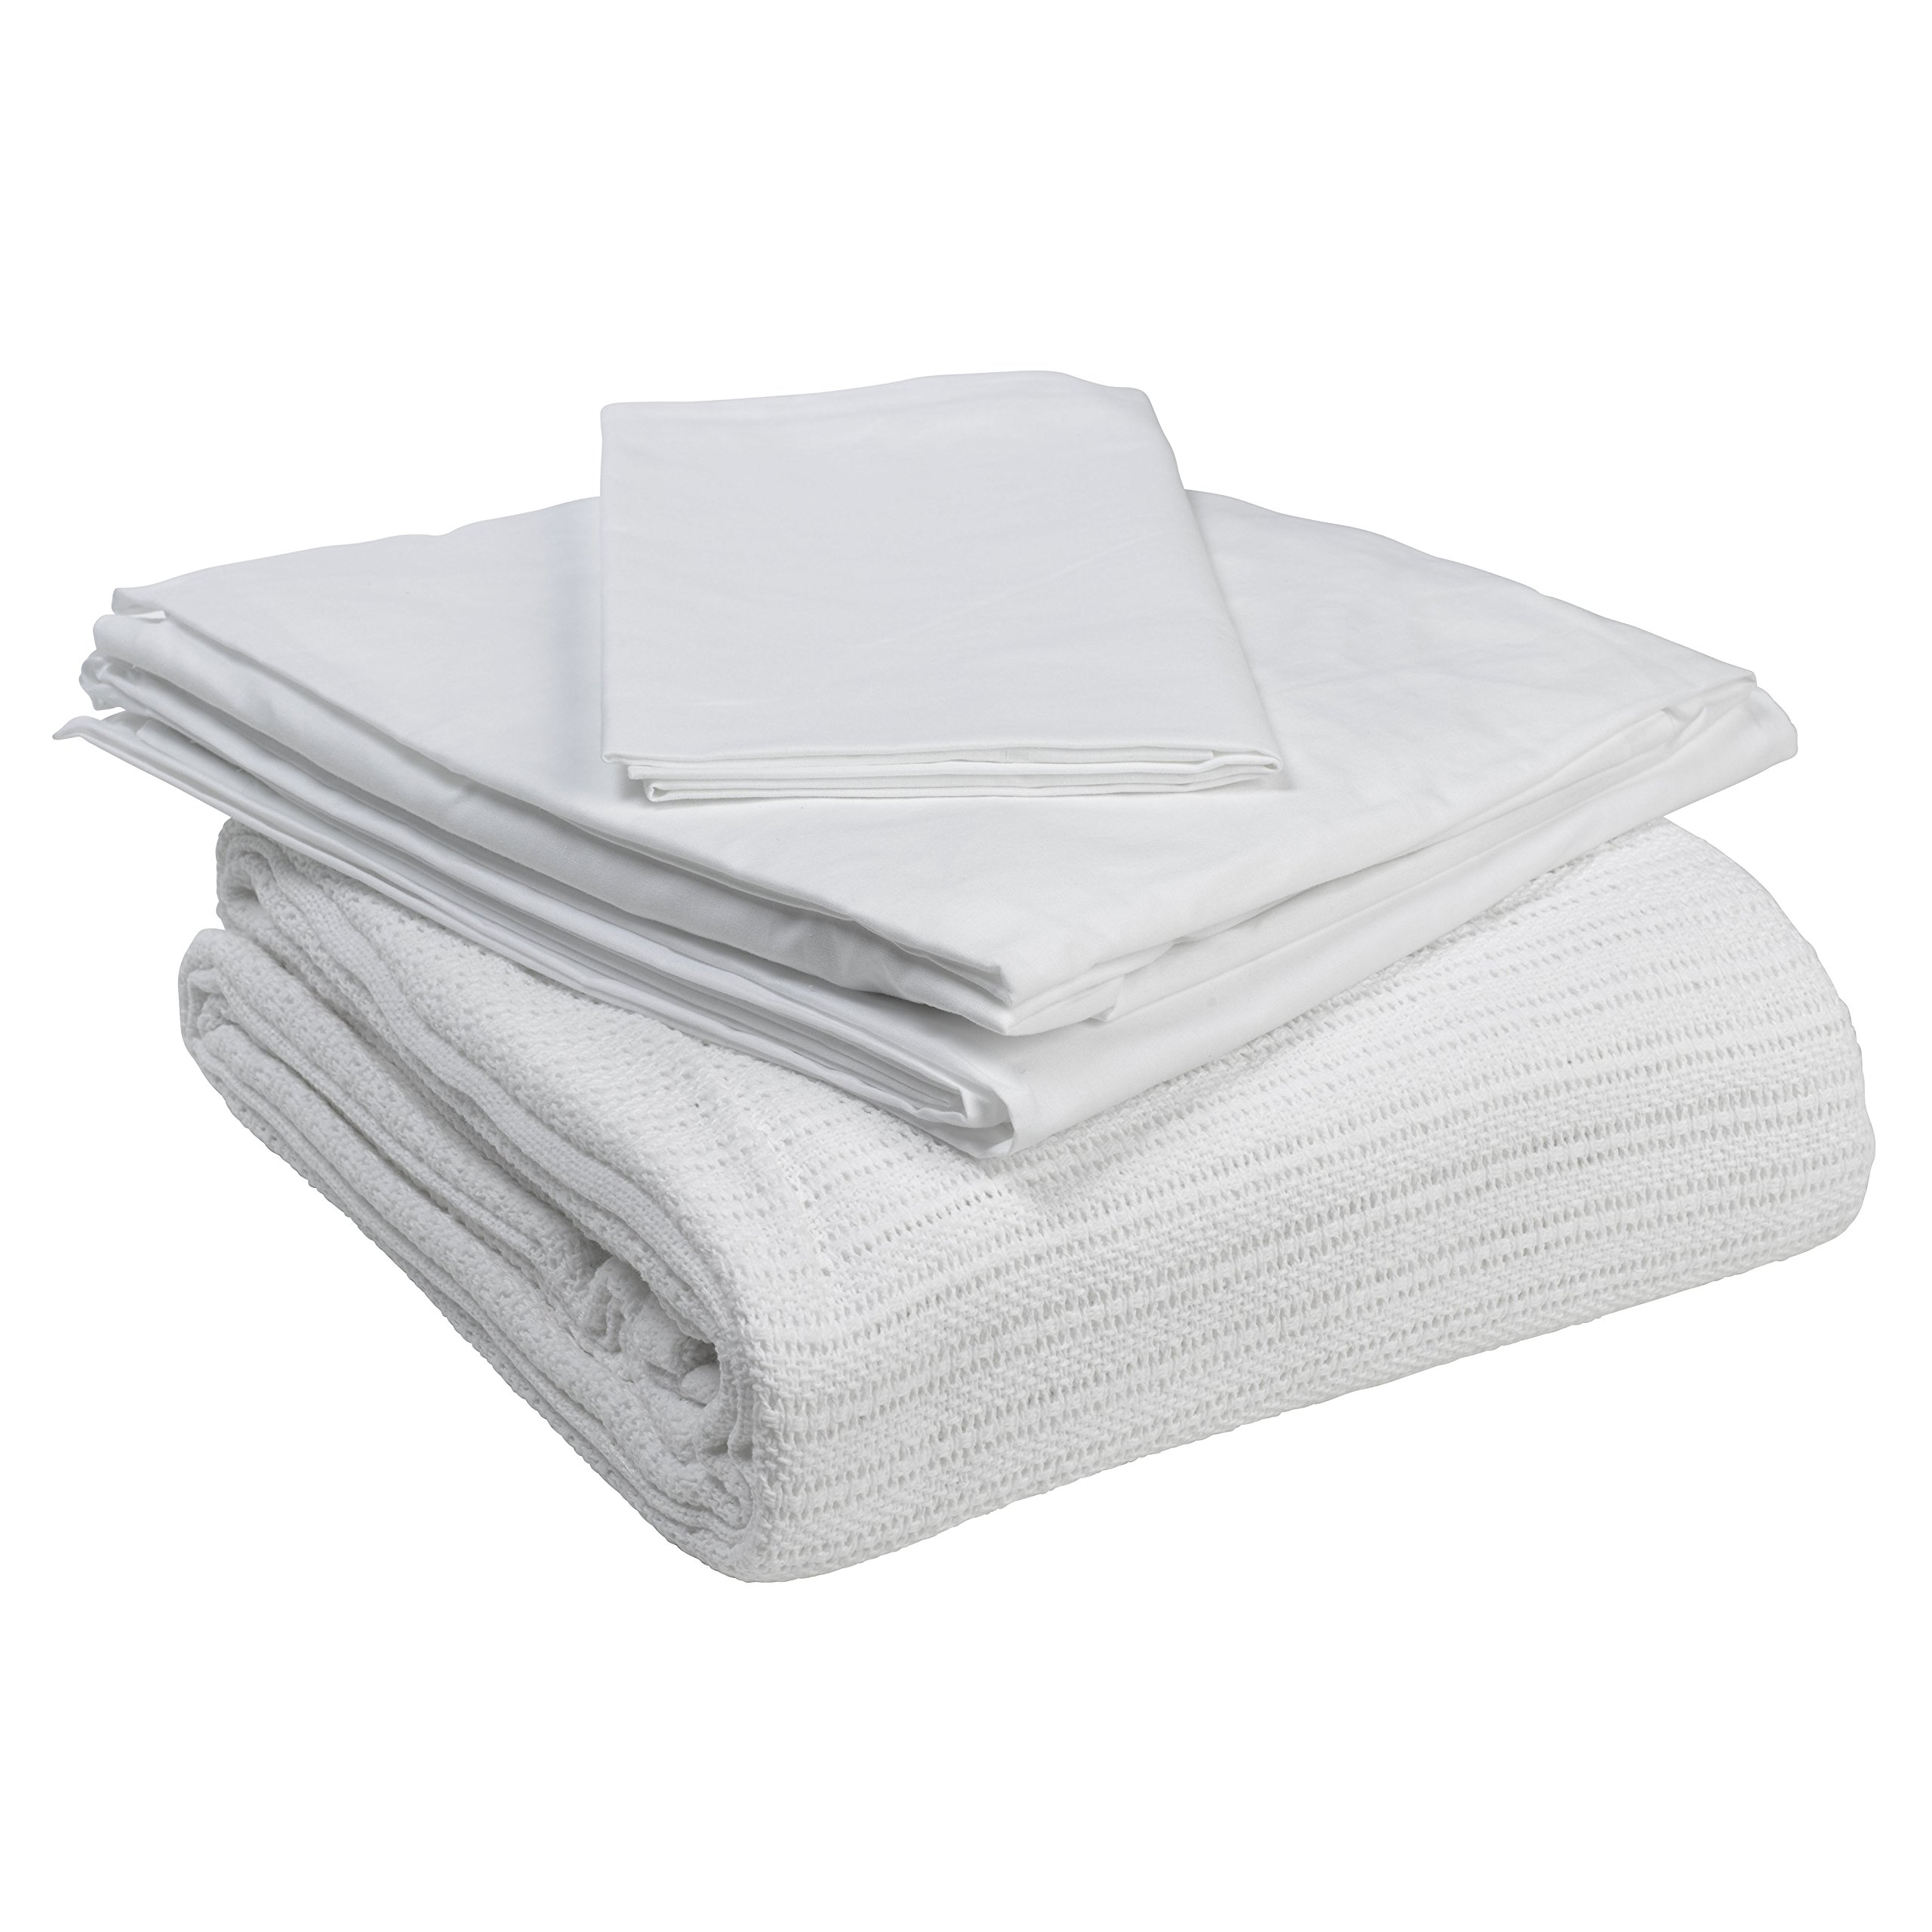 Drive Medical 15030HBC Hospital Bed Bedding in A Box, White